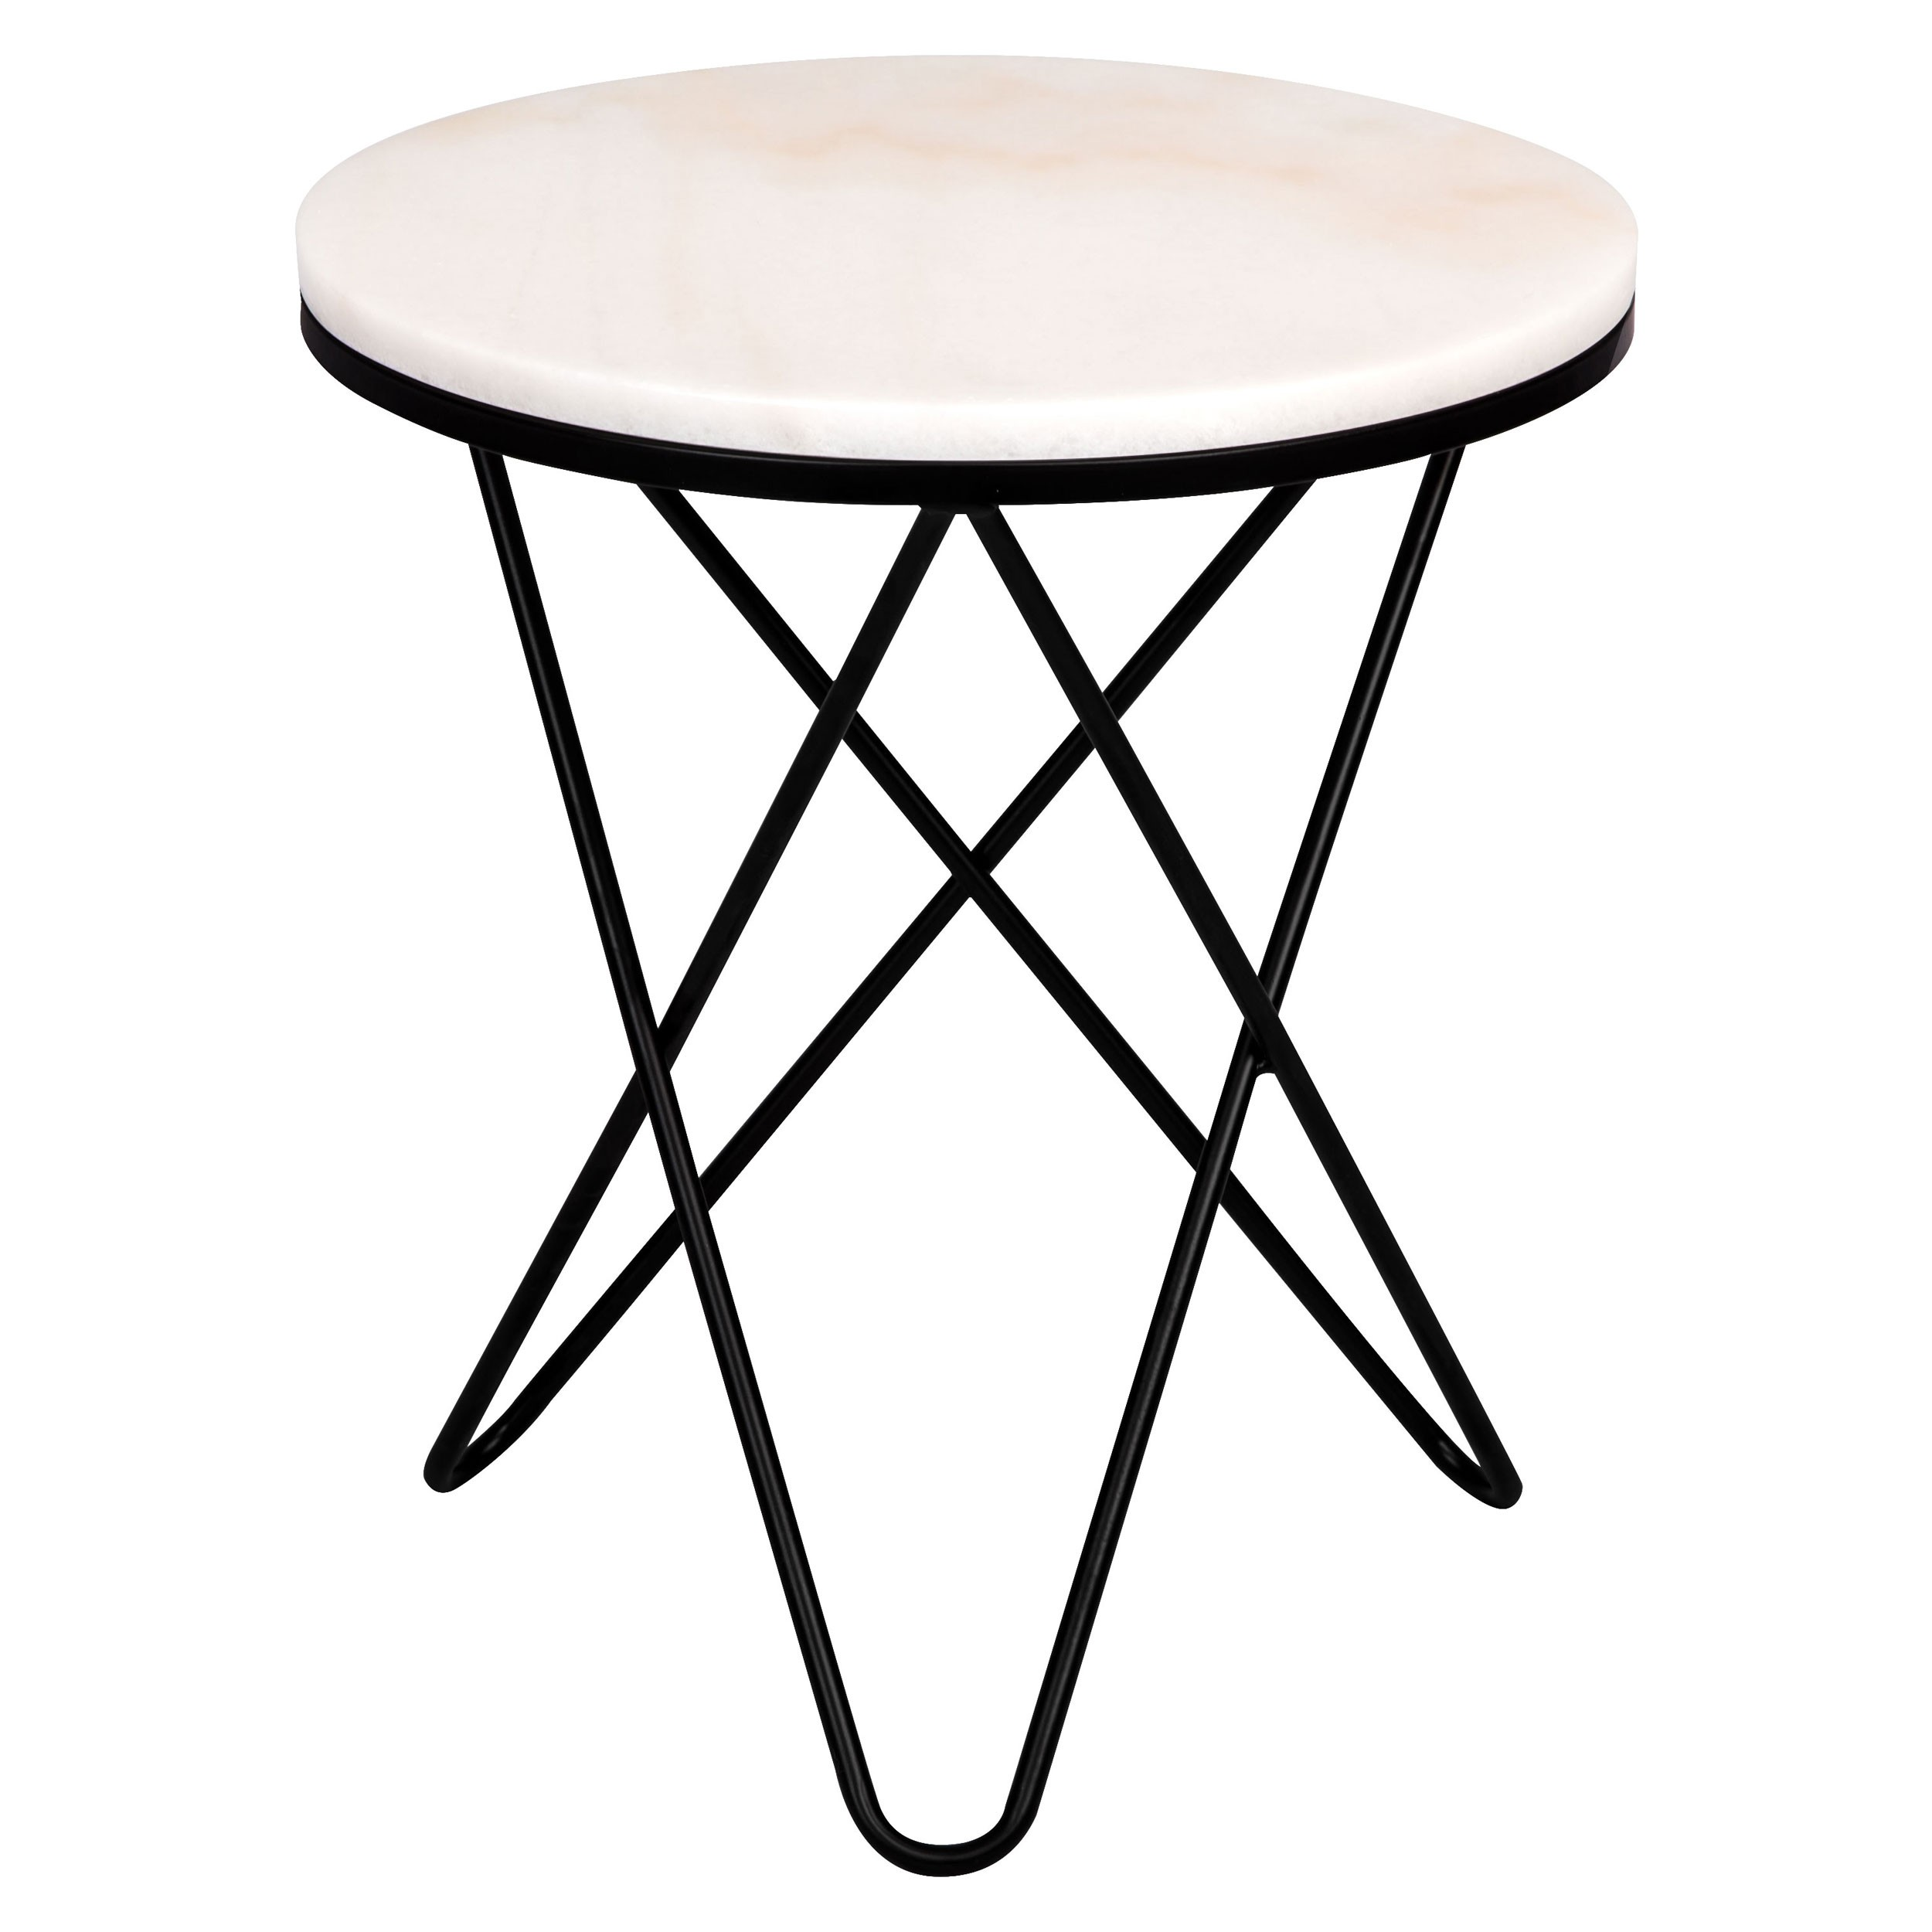 Table D Appoint Marbre.Table D Appoint Ronde Oda Marbre Blanche